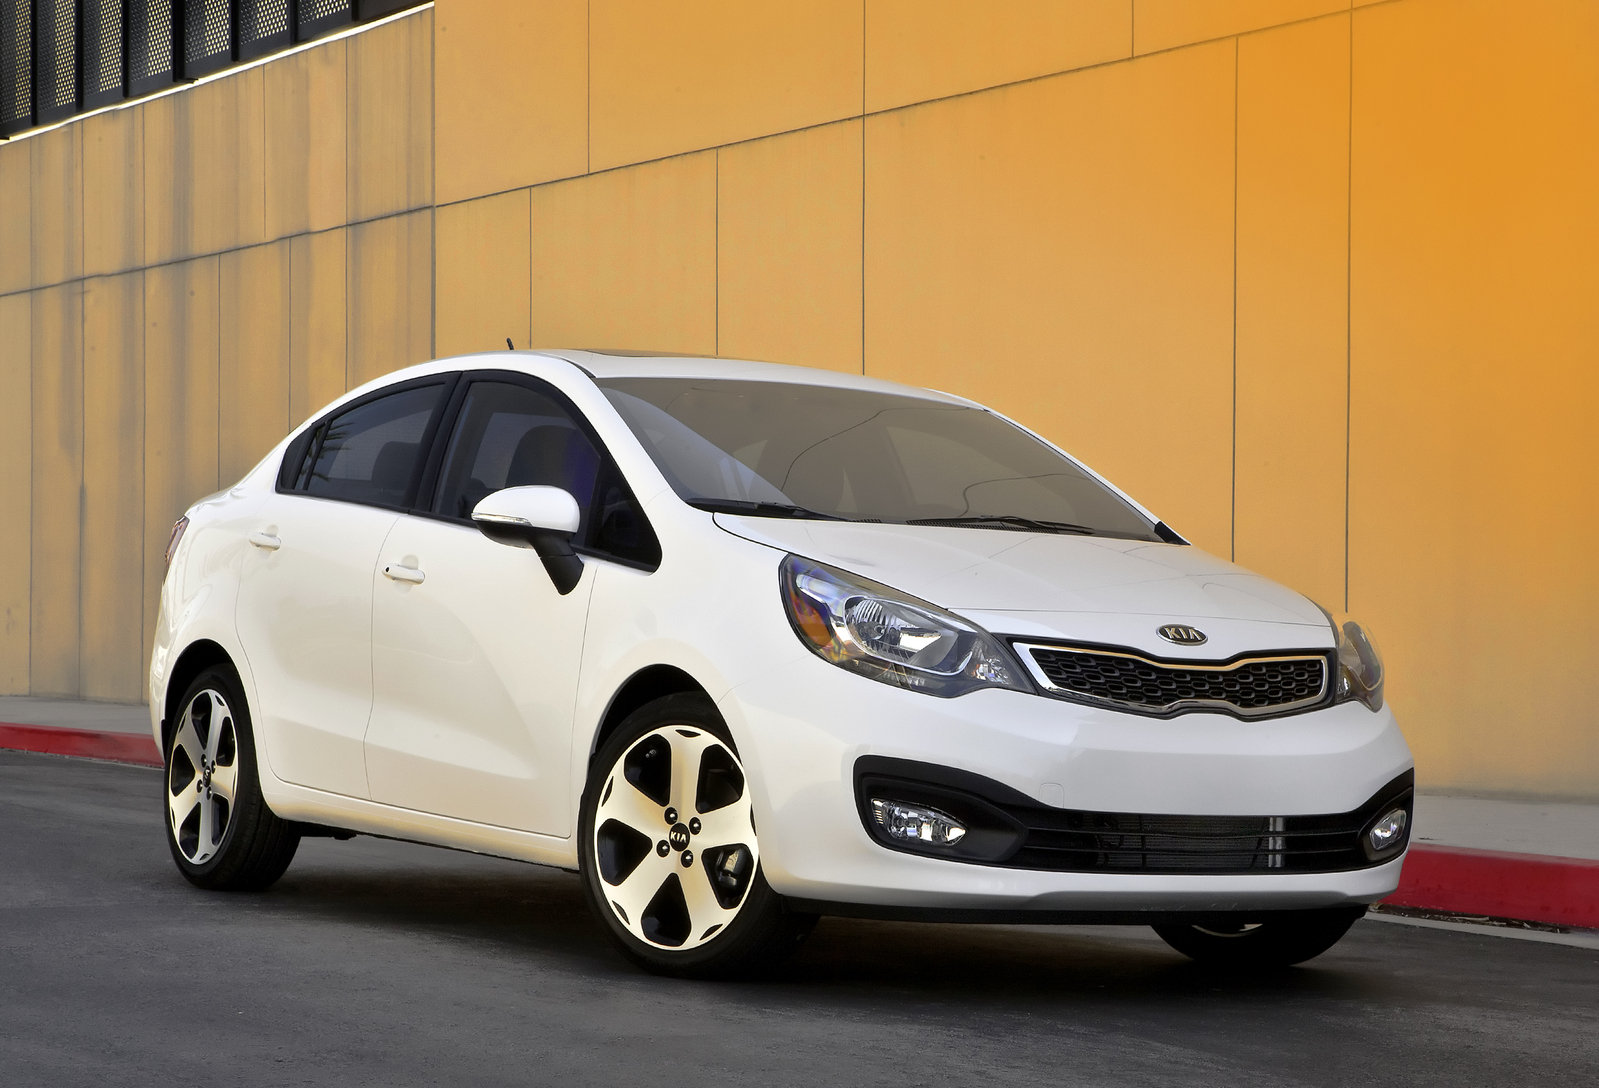 2013 kia rio sedan picture 511510 car review top speed. Black Bedroom Furniture Sets. Home Design Ideas